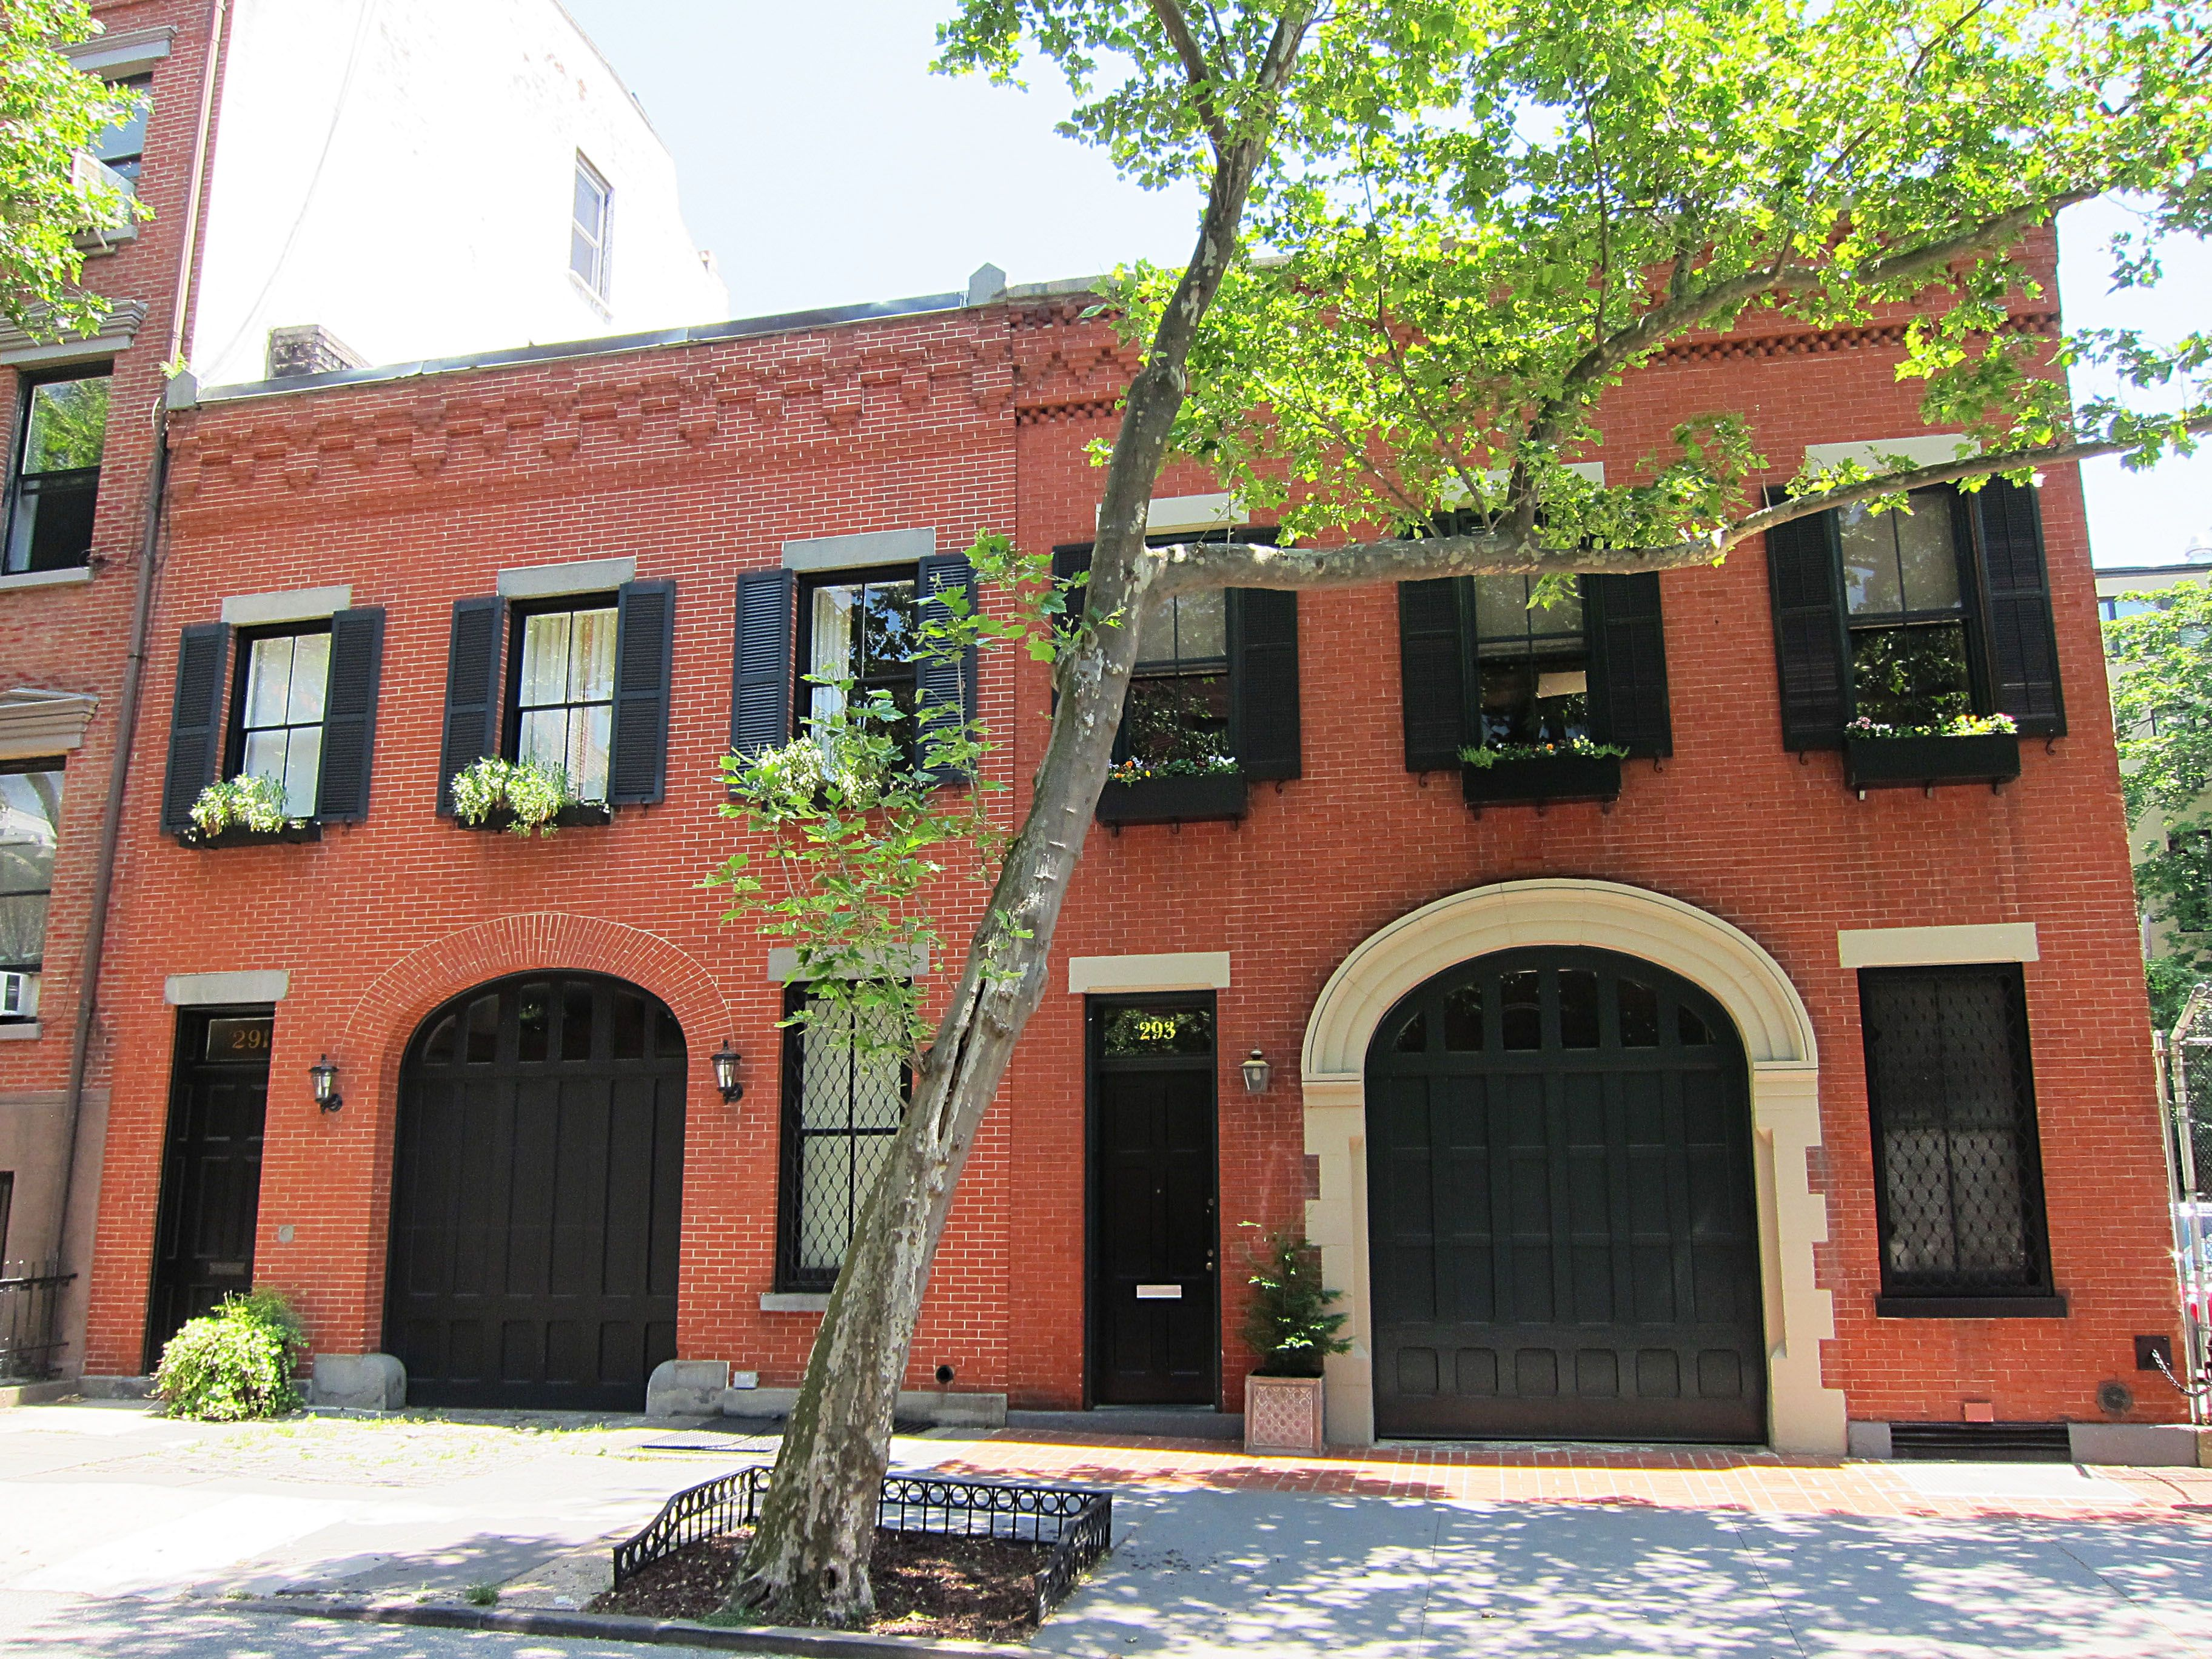 Carriage Houses At 291 And 293 Hicks Street In Brooklyn